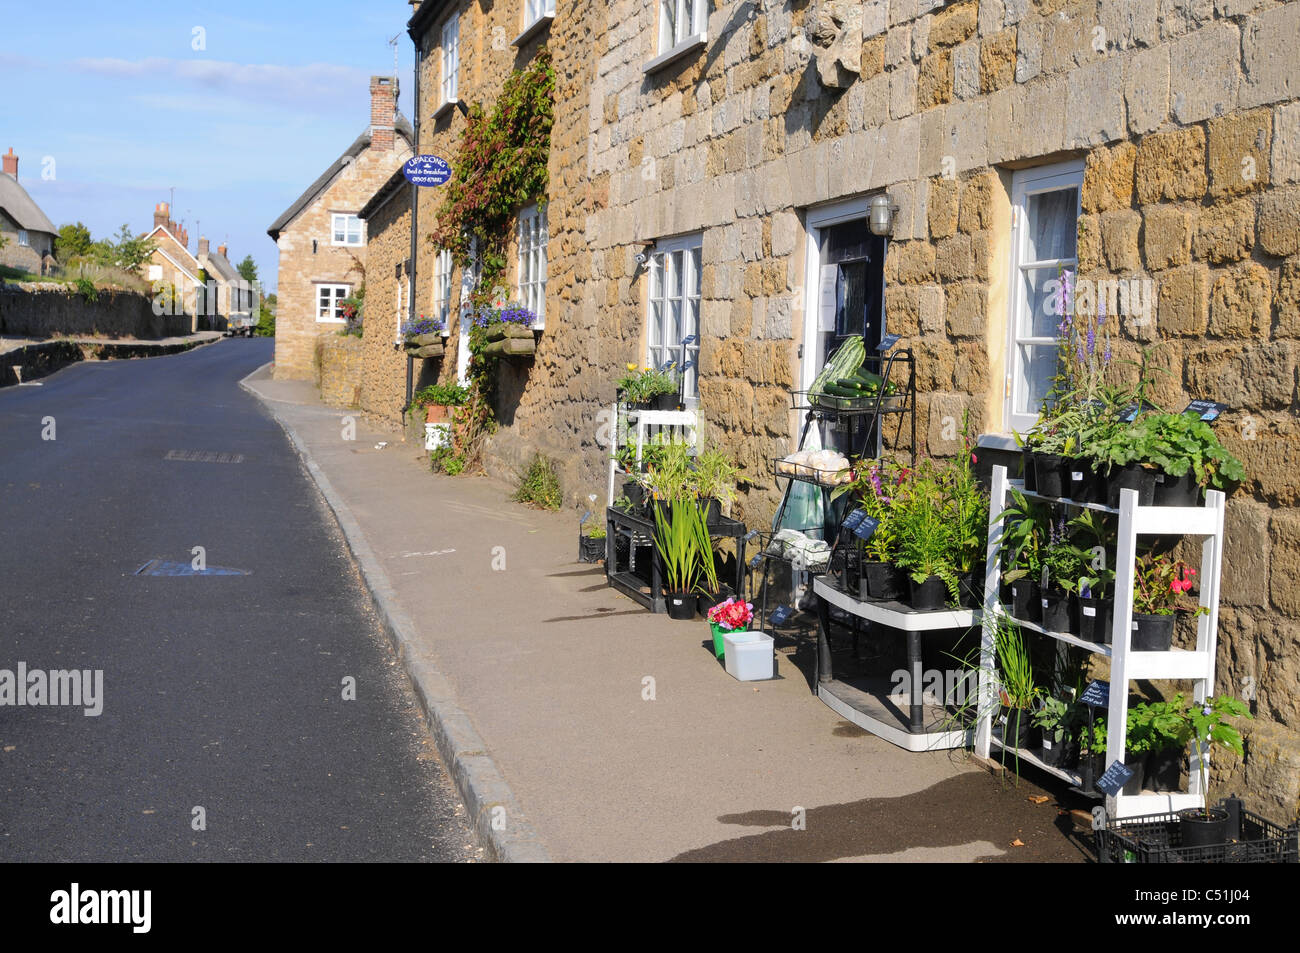 Home produced produce for sale outside a cottage in Abbotsbury, Dorset - Stock Image